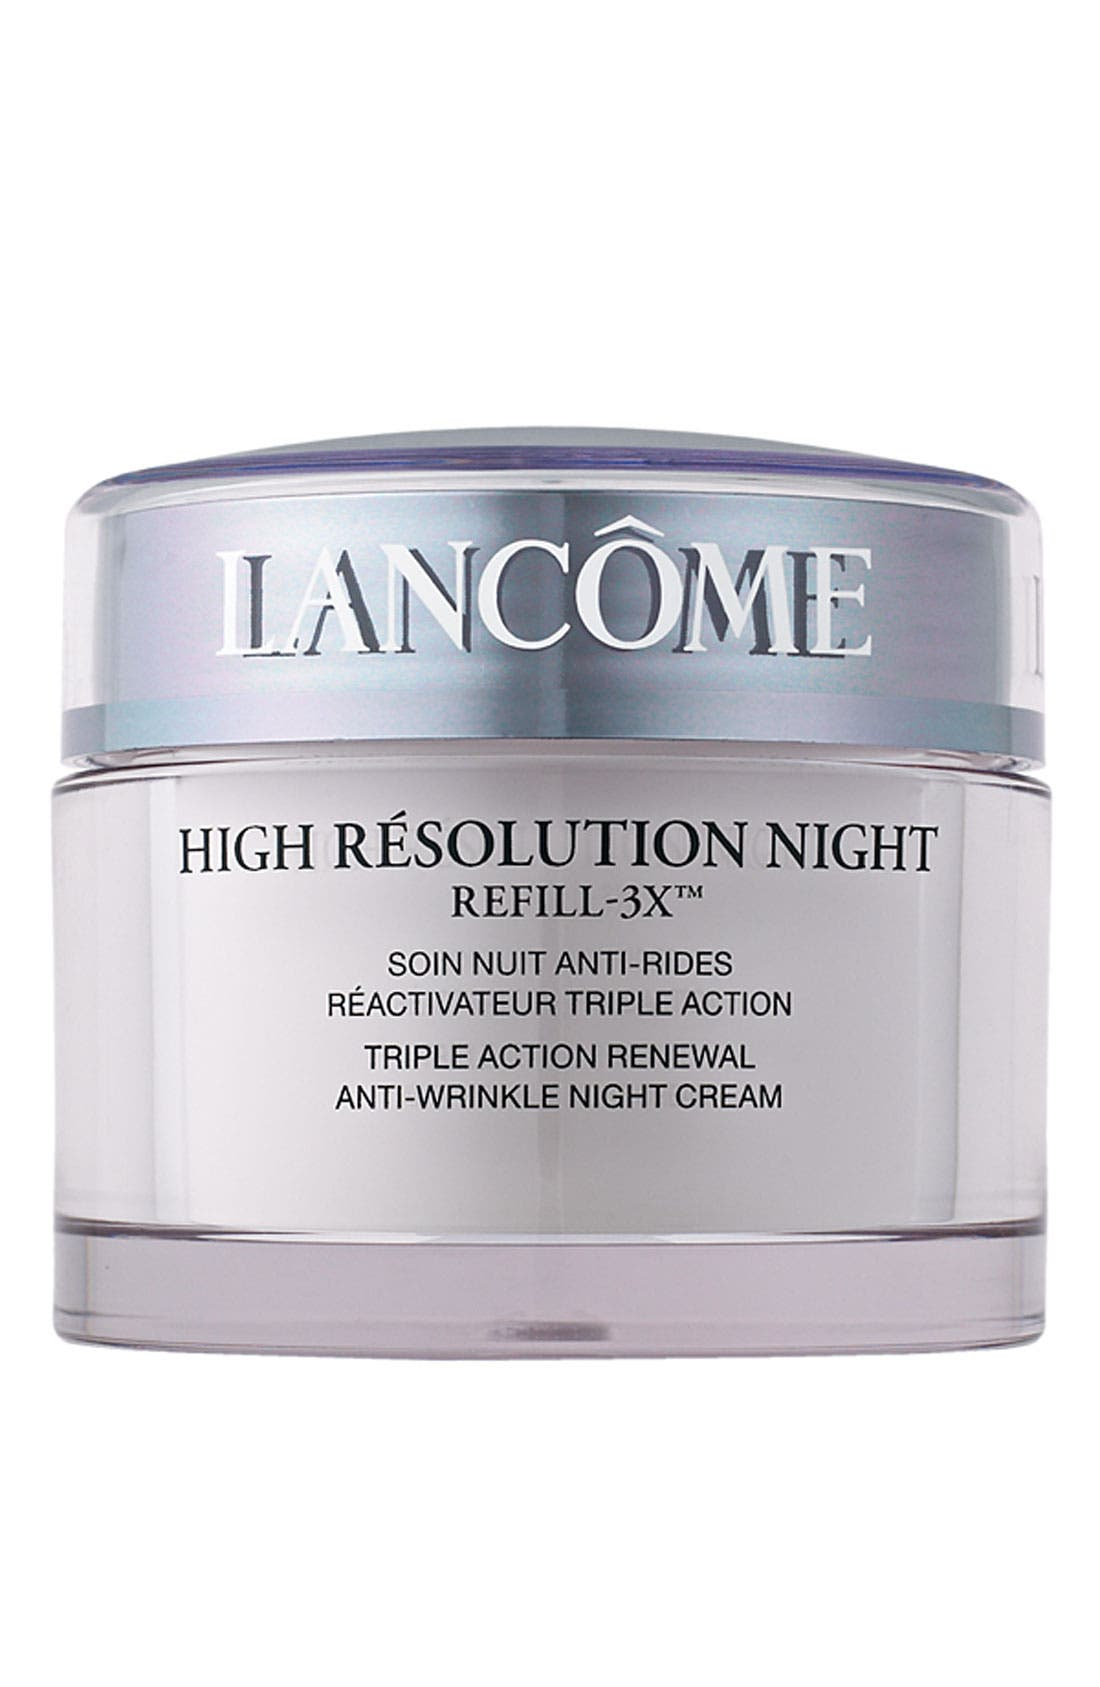 High Résolution Refill-3X Anti-Wrinkle Night Moisturizer Cream,                             Main thumbnail 1, color,                             NO COLOR